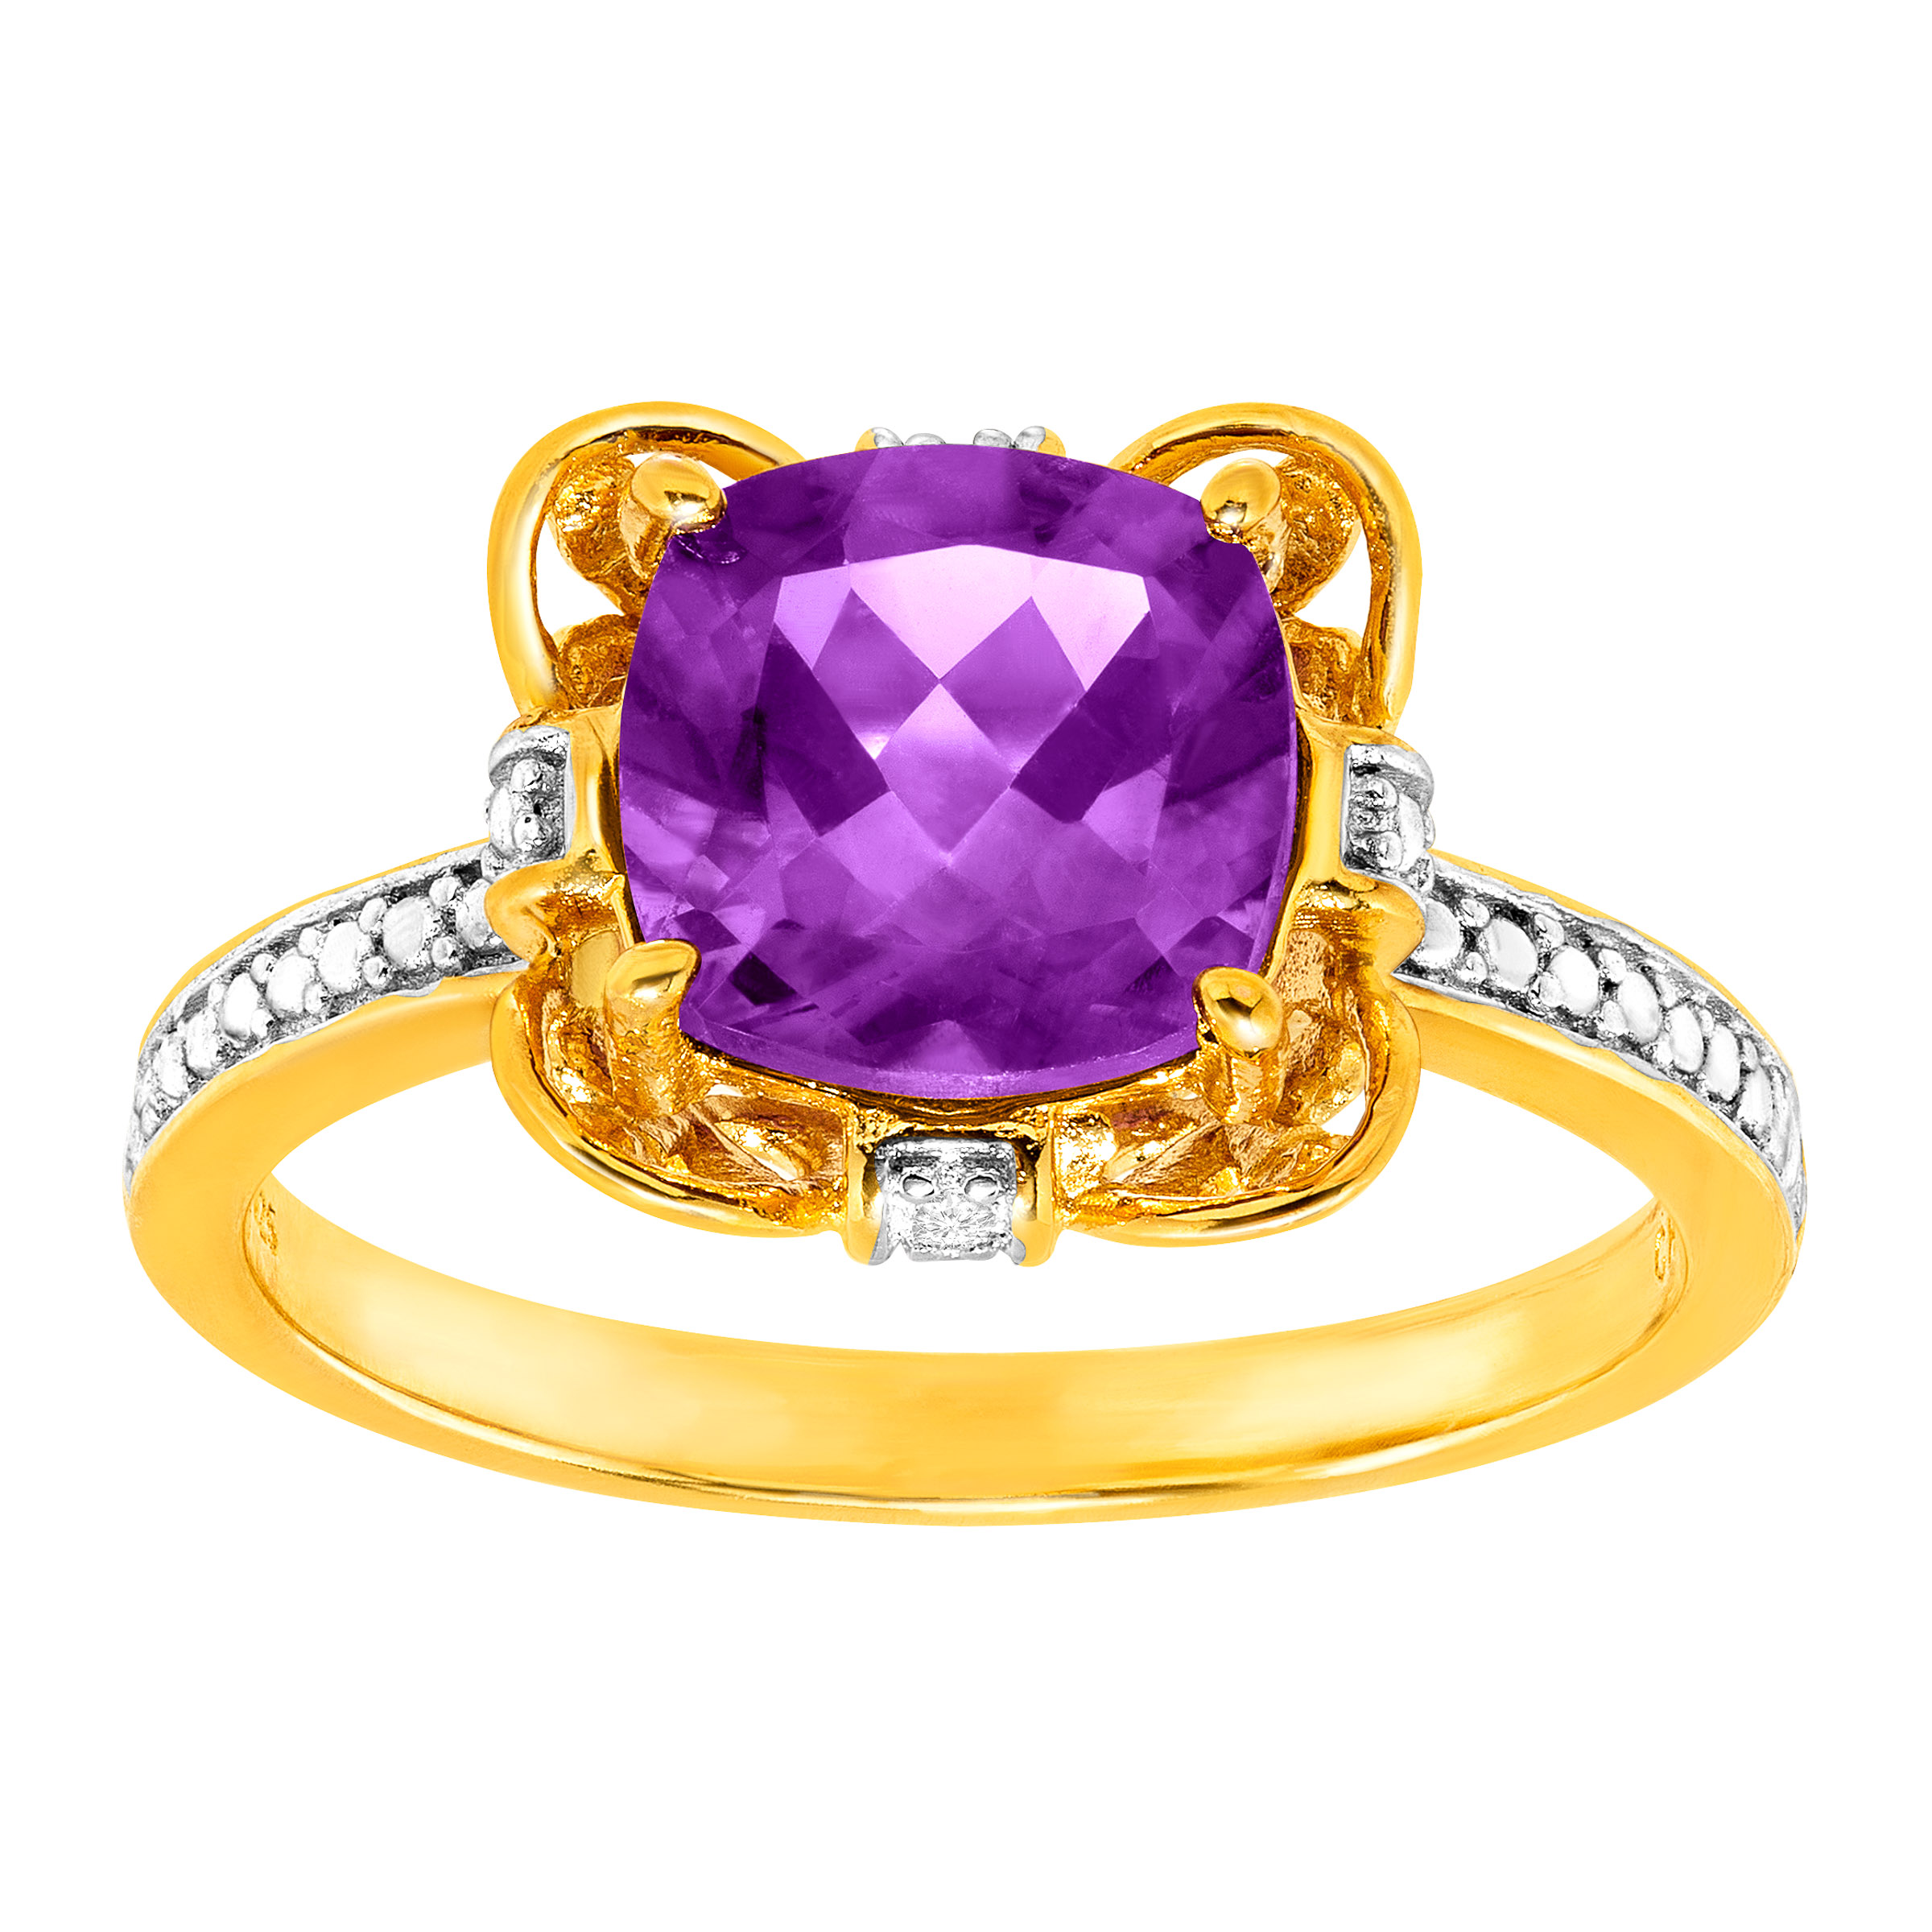 1 1 2 ct Natural Amethyst Ring with Diamonds in 18kt Gold-Plated Sterling Silver by Richline Group